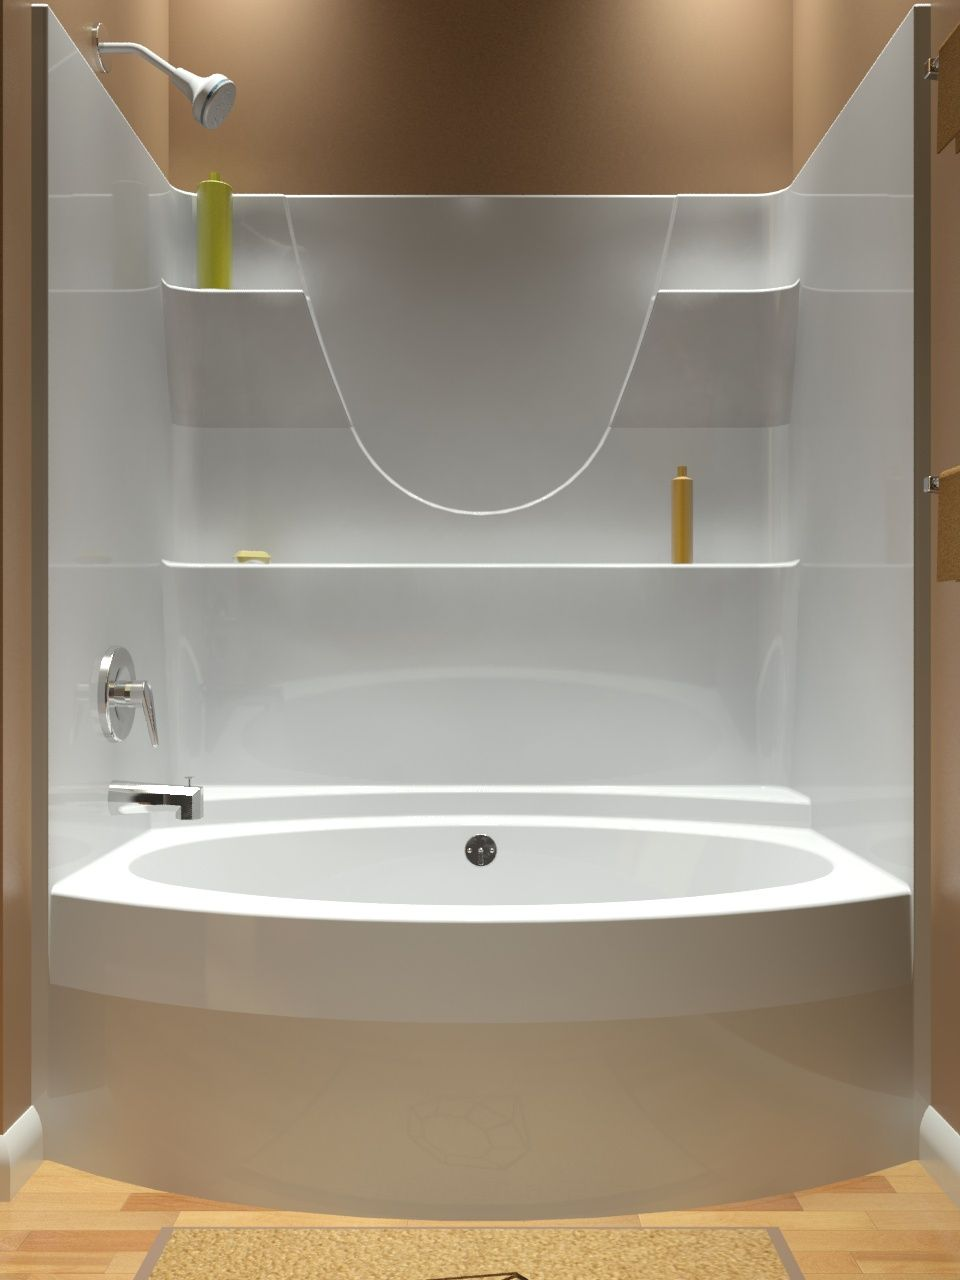 T 603580 | Diamond Tub & Showers | SHOWER/TUB UNITS in 2018 ...